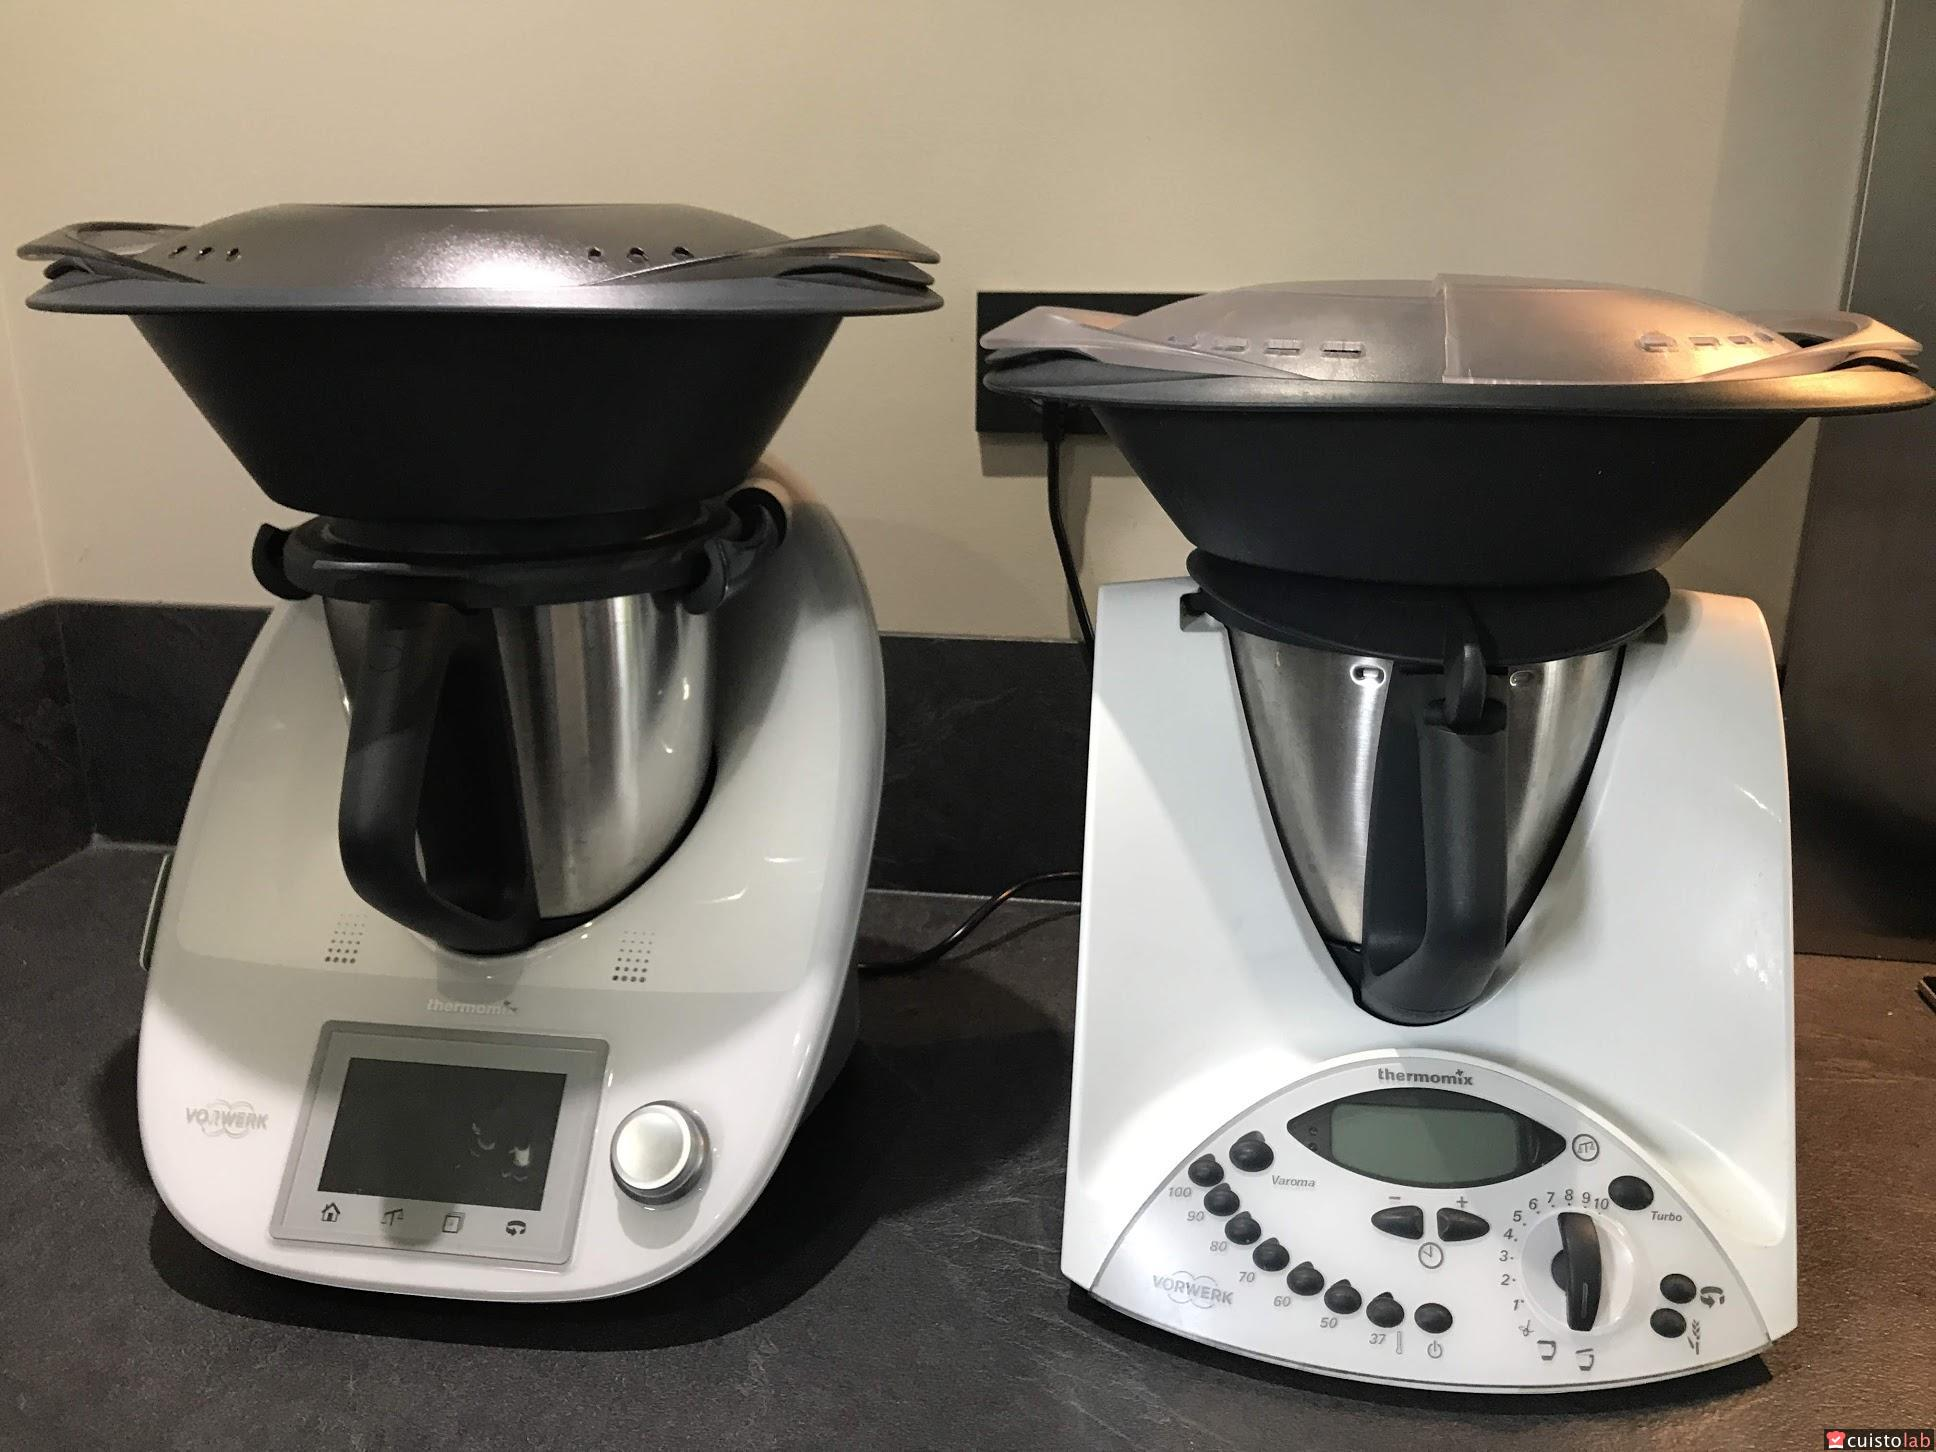 Comment Utiliser Le Thermomix comparatif entre le thermomix tm31 et le tm5